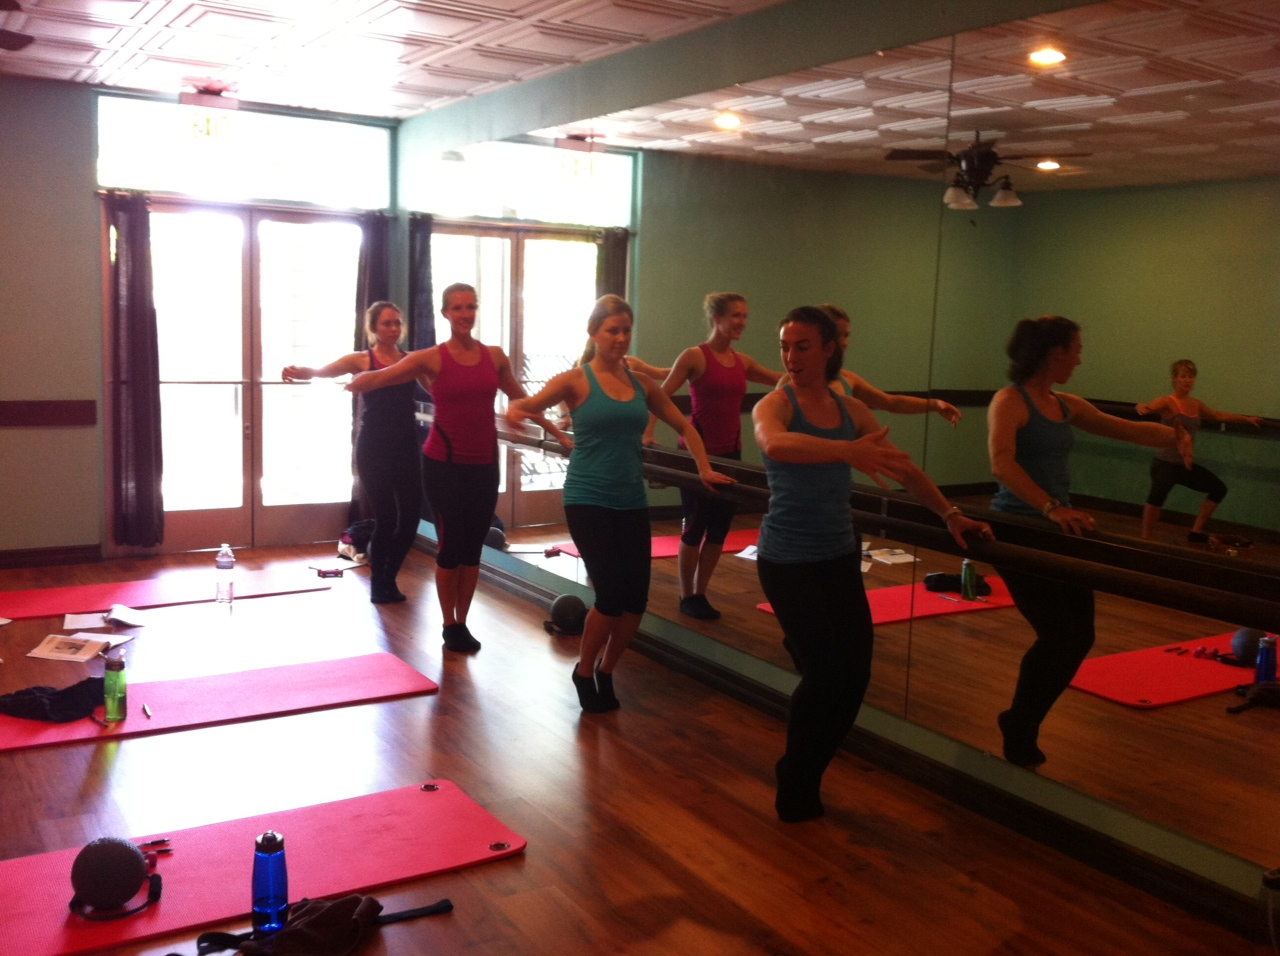 Xtend Barre Instructor Training Shaped For Fitness